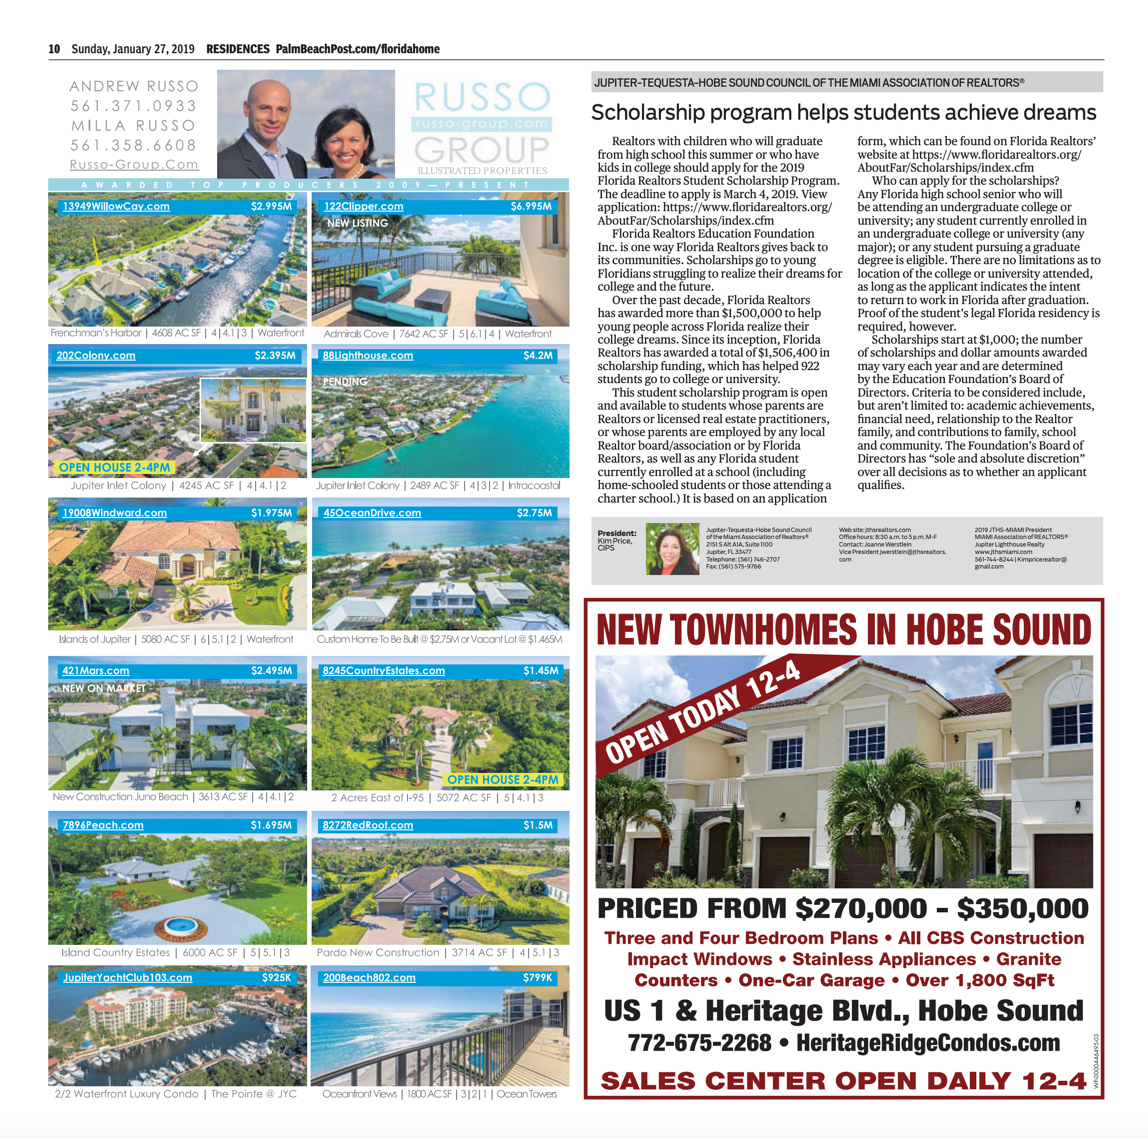 Palm Beach Post Residences Ad